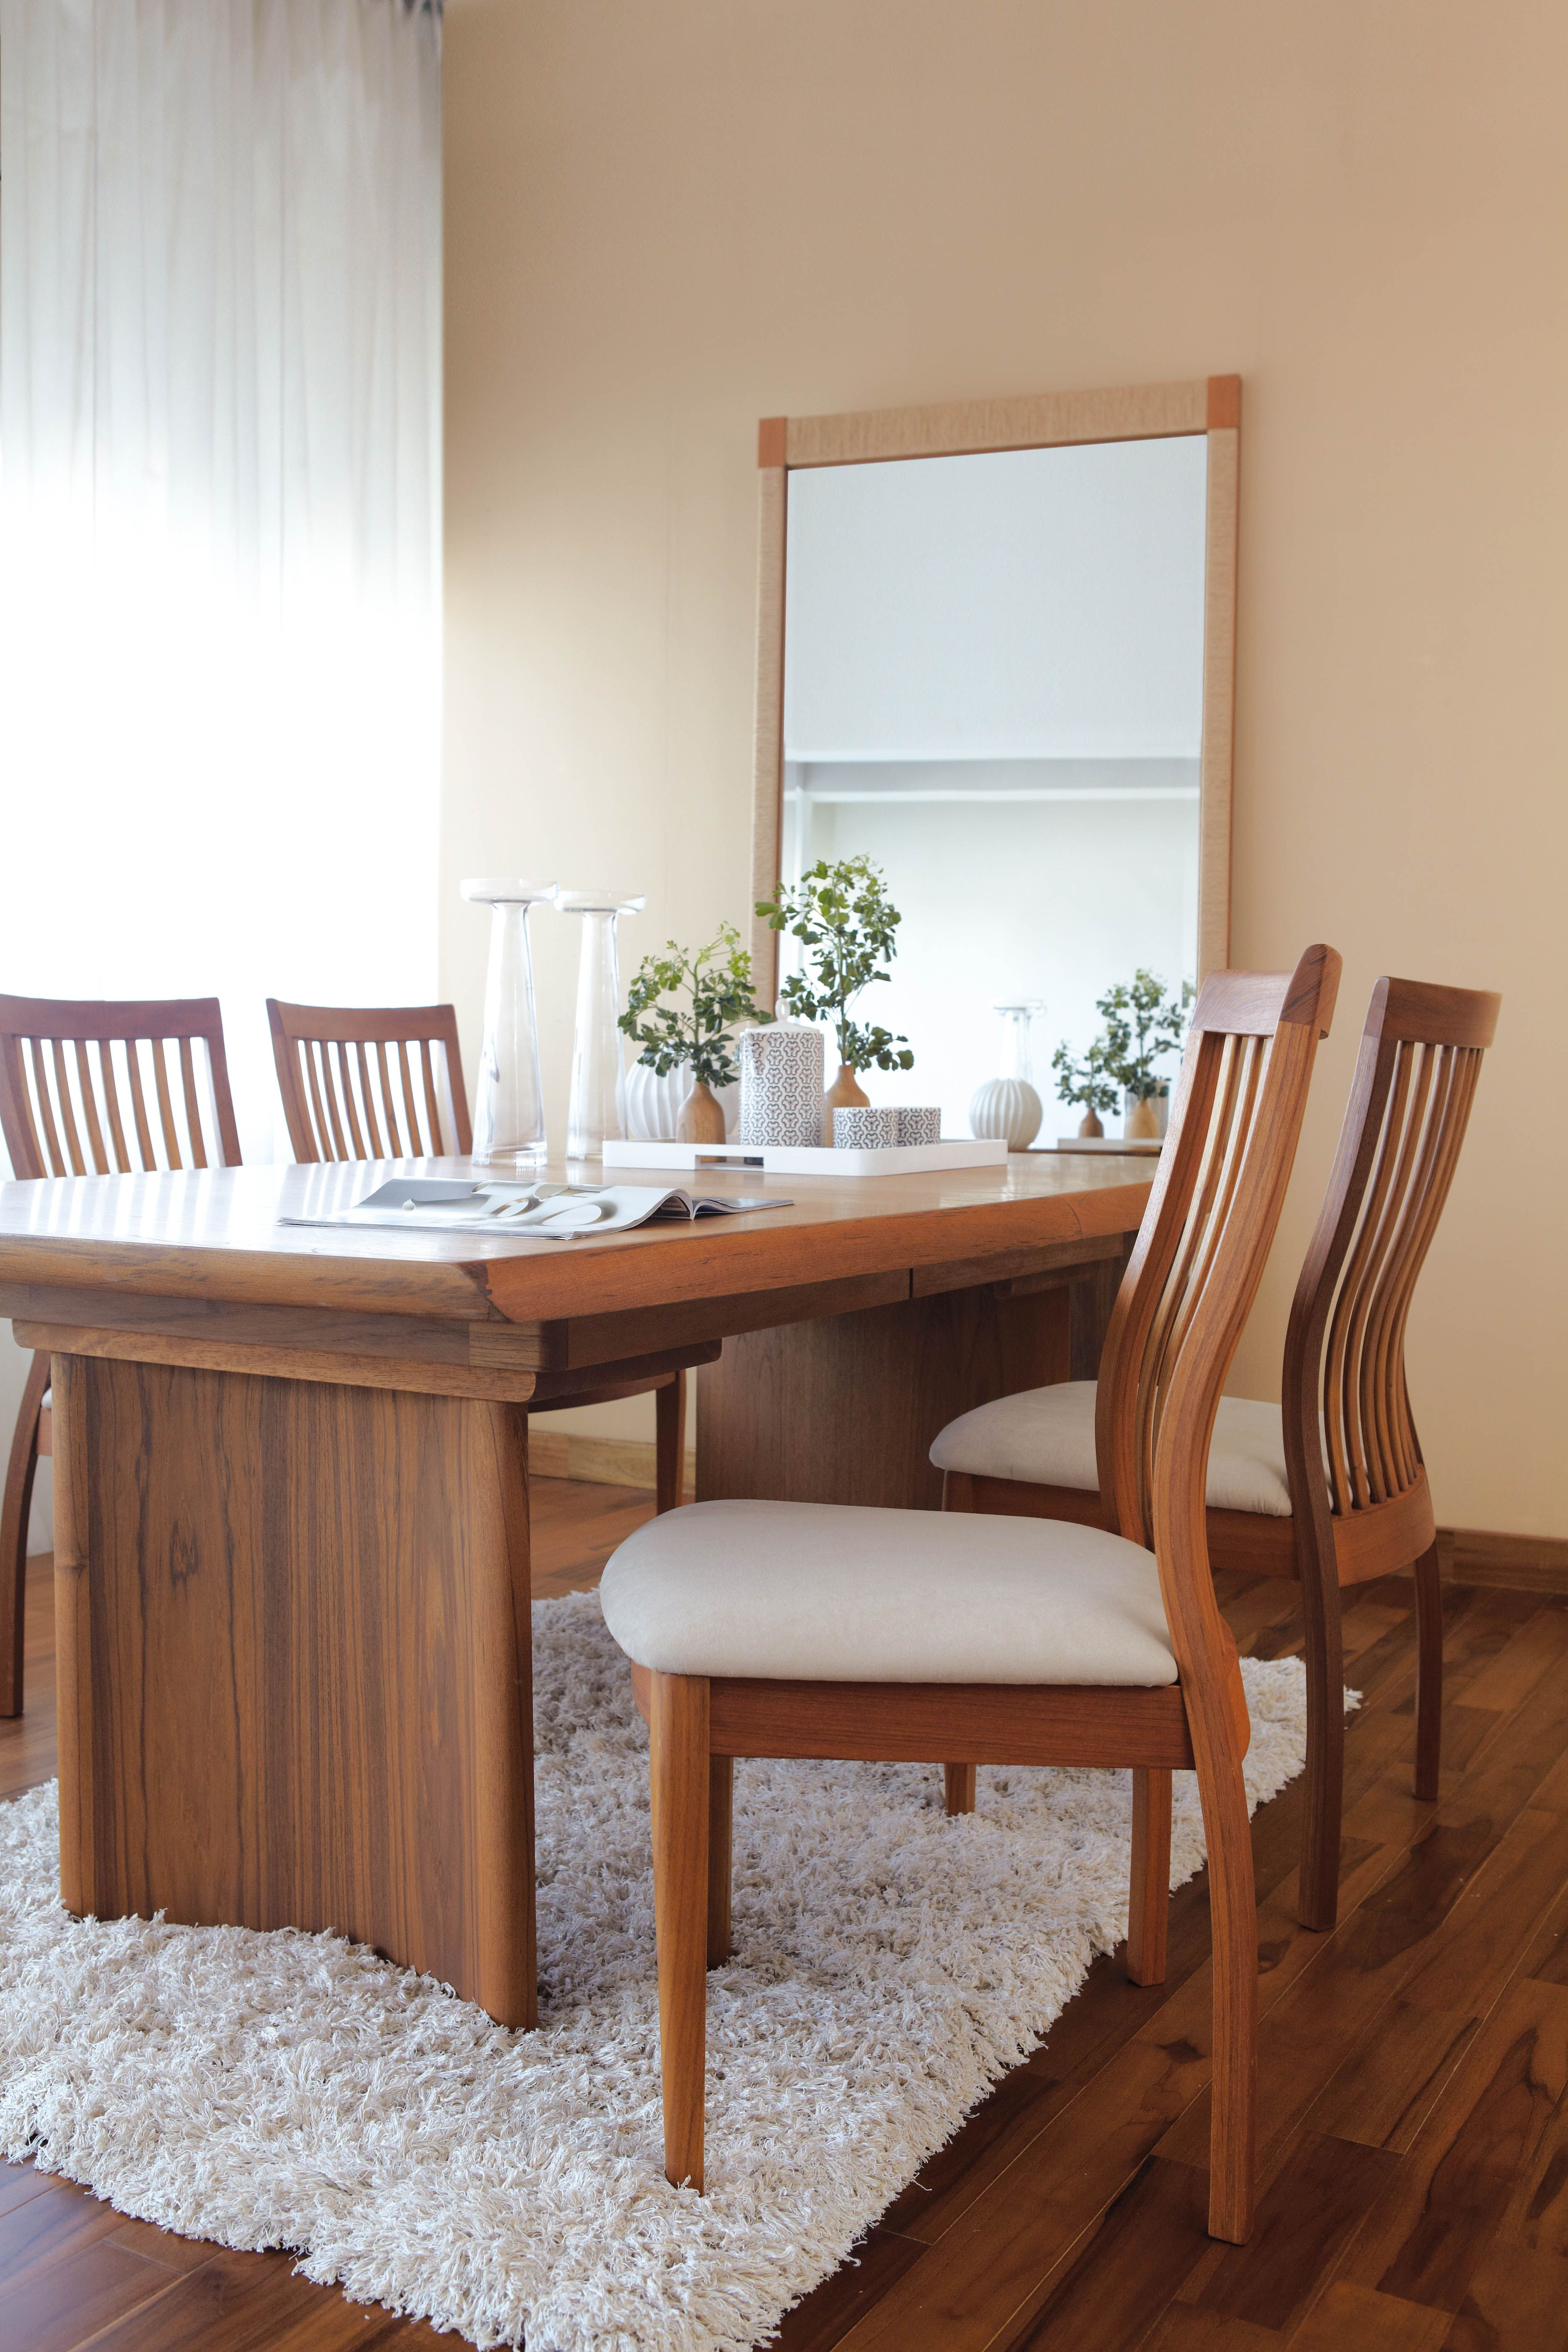 Our Classic Teak Furniture Is Carefully Selected To Give The Best